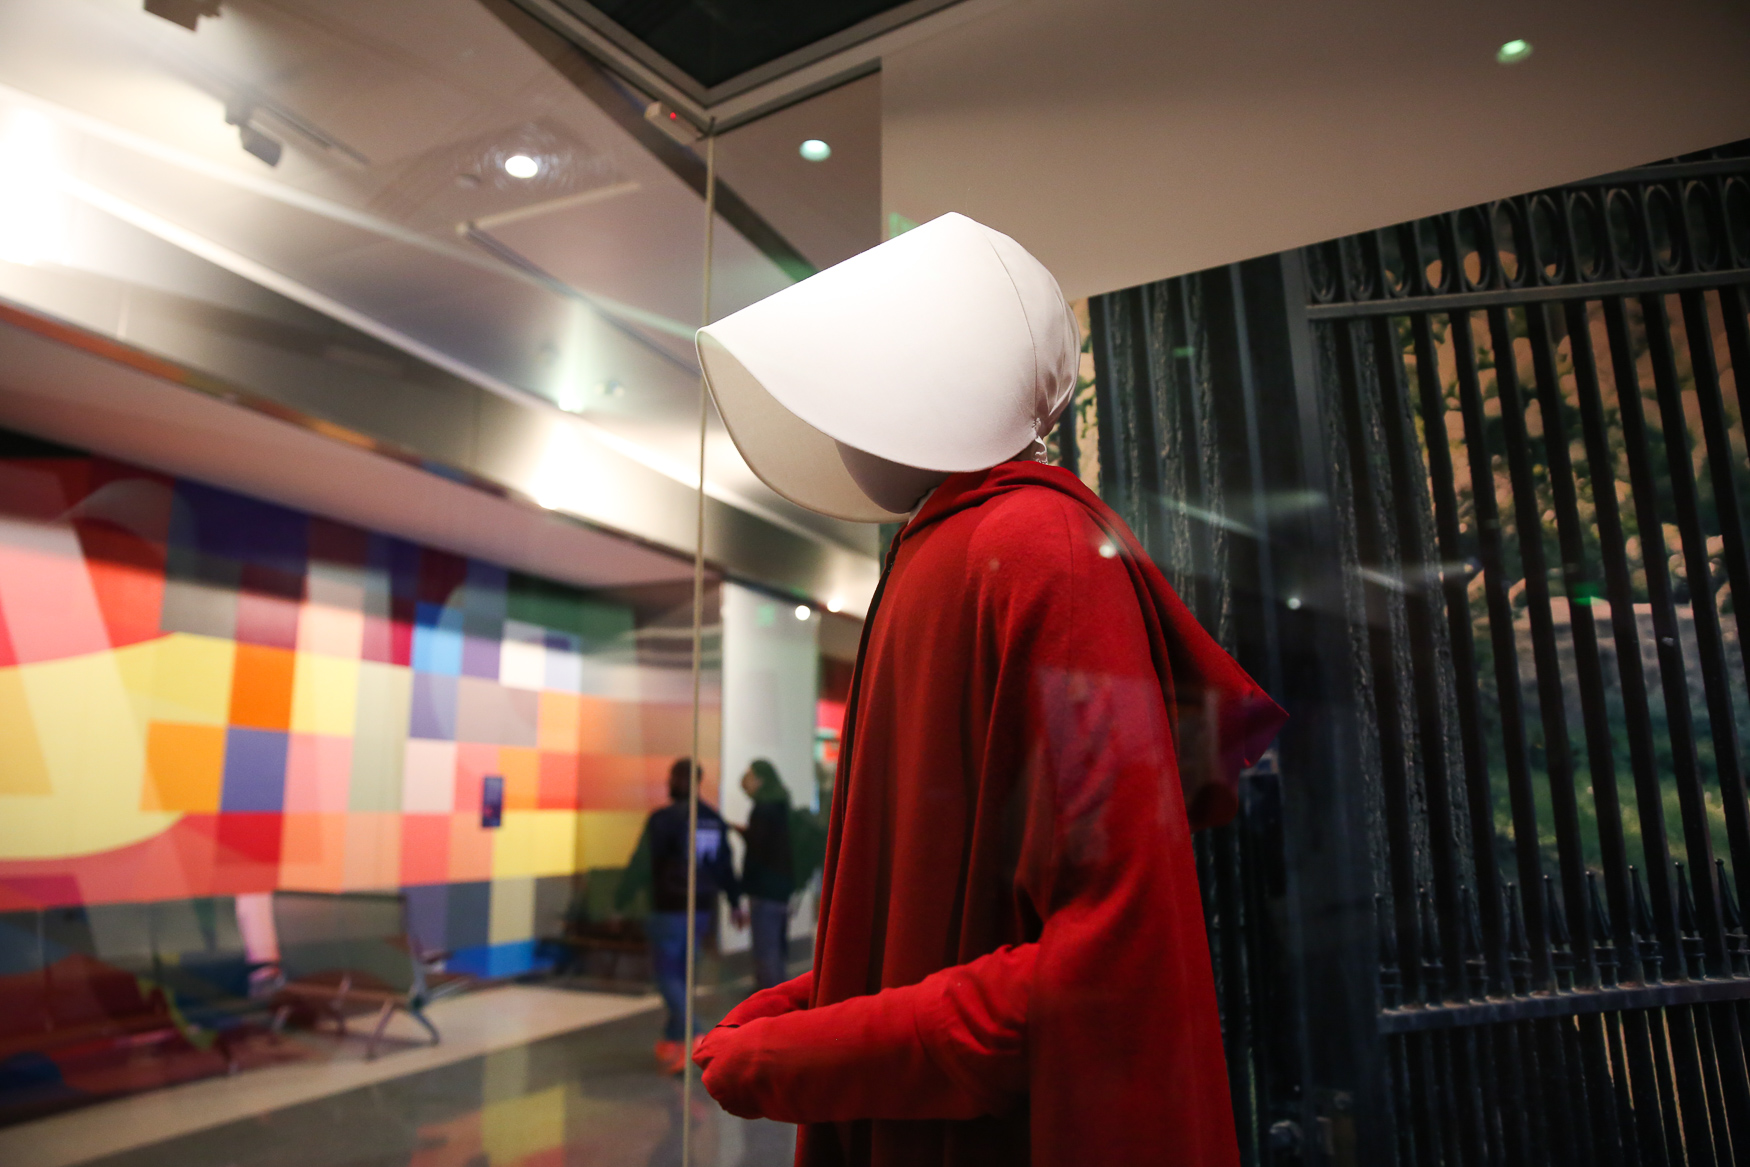 Elisabeth Moss wore this costume during the first season of 'The Handmaid's Tale'. (Amanda Andrade-Rhoades/DC Refined)